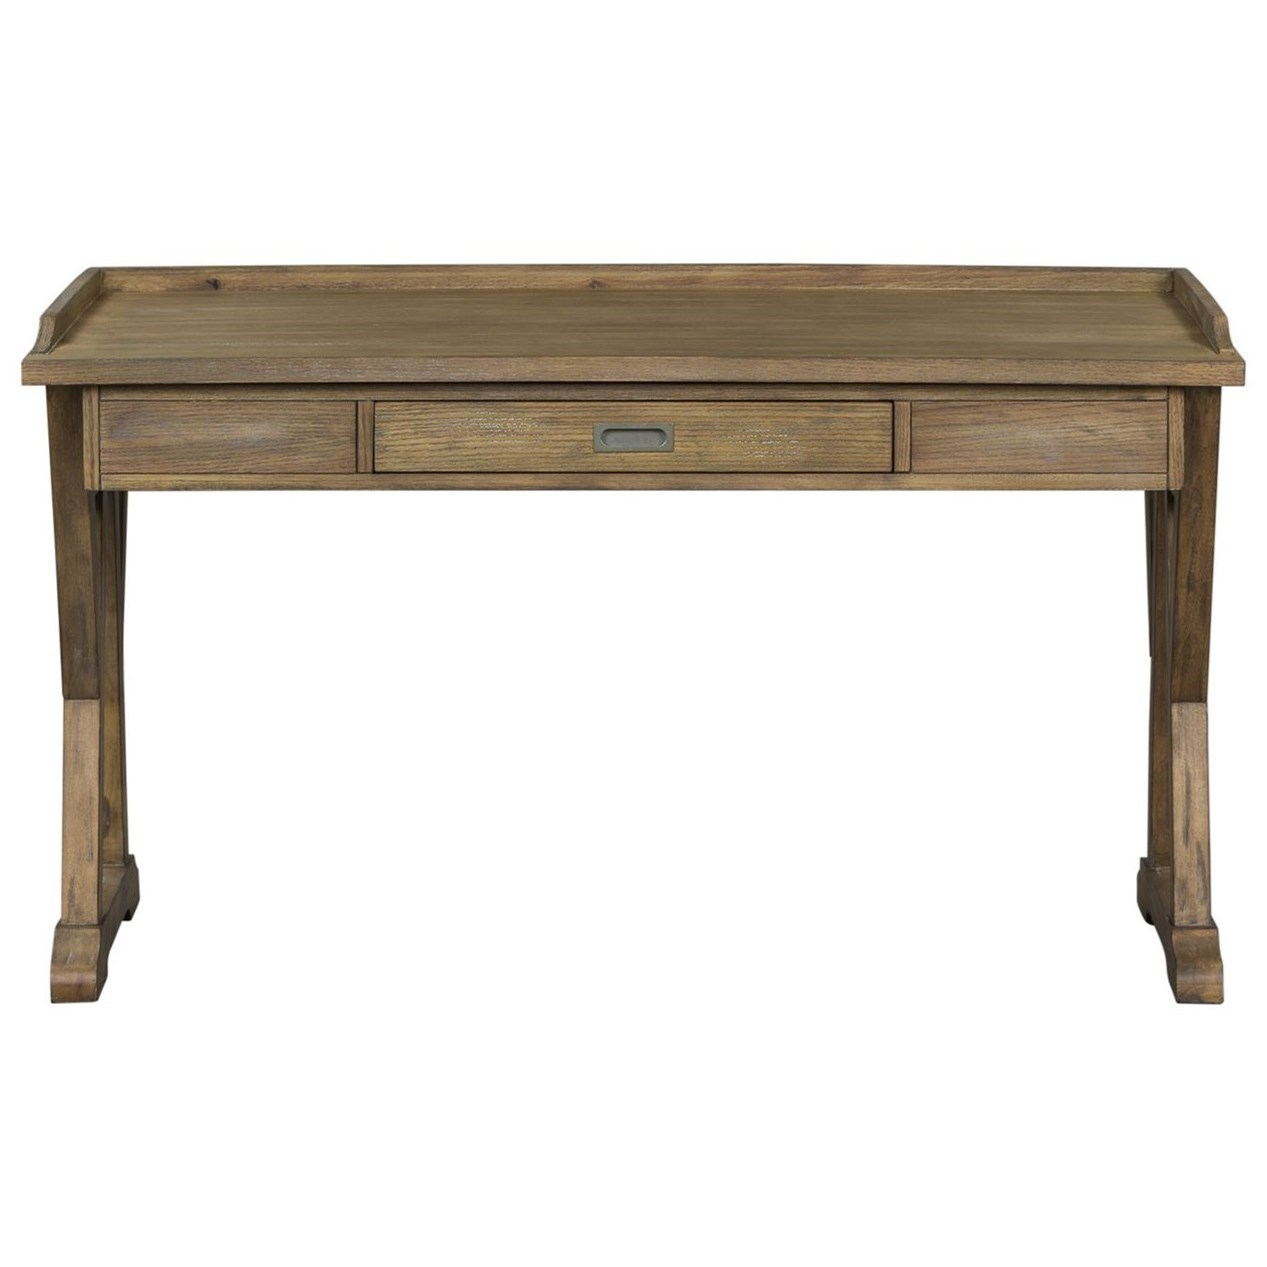 466-HOJ Lift Top Writing Desk by Liberty Furniture at Upper Room Home Furnishings